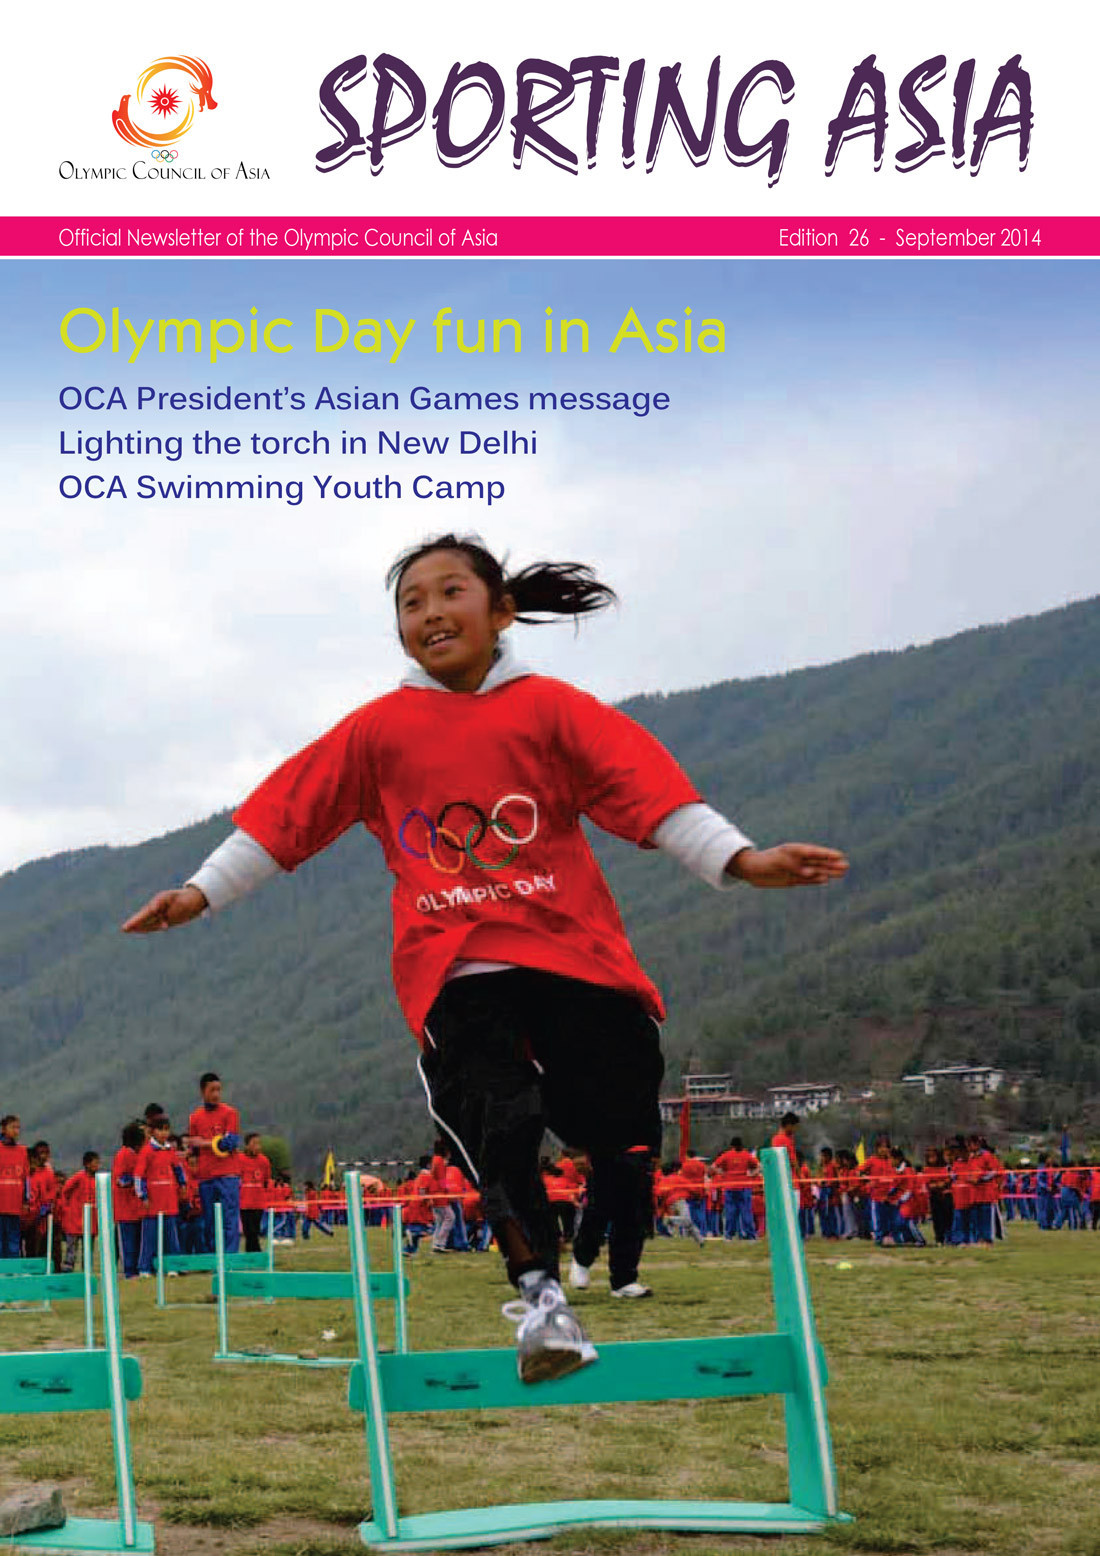 Sporting Asia - Edition 26 - SEP 2014